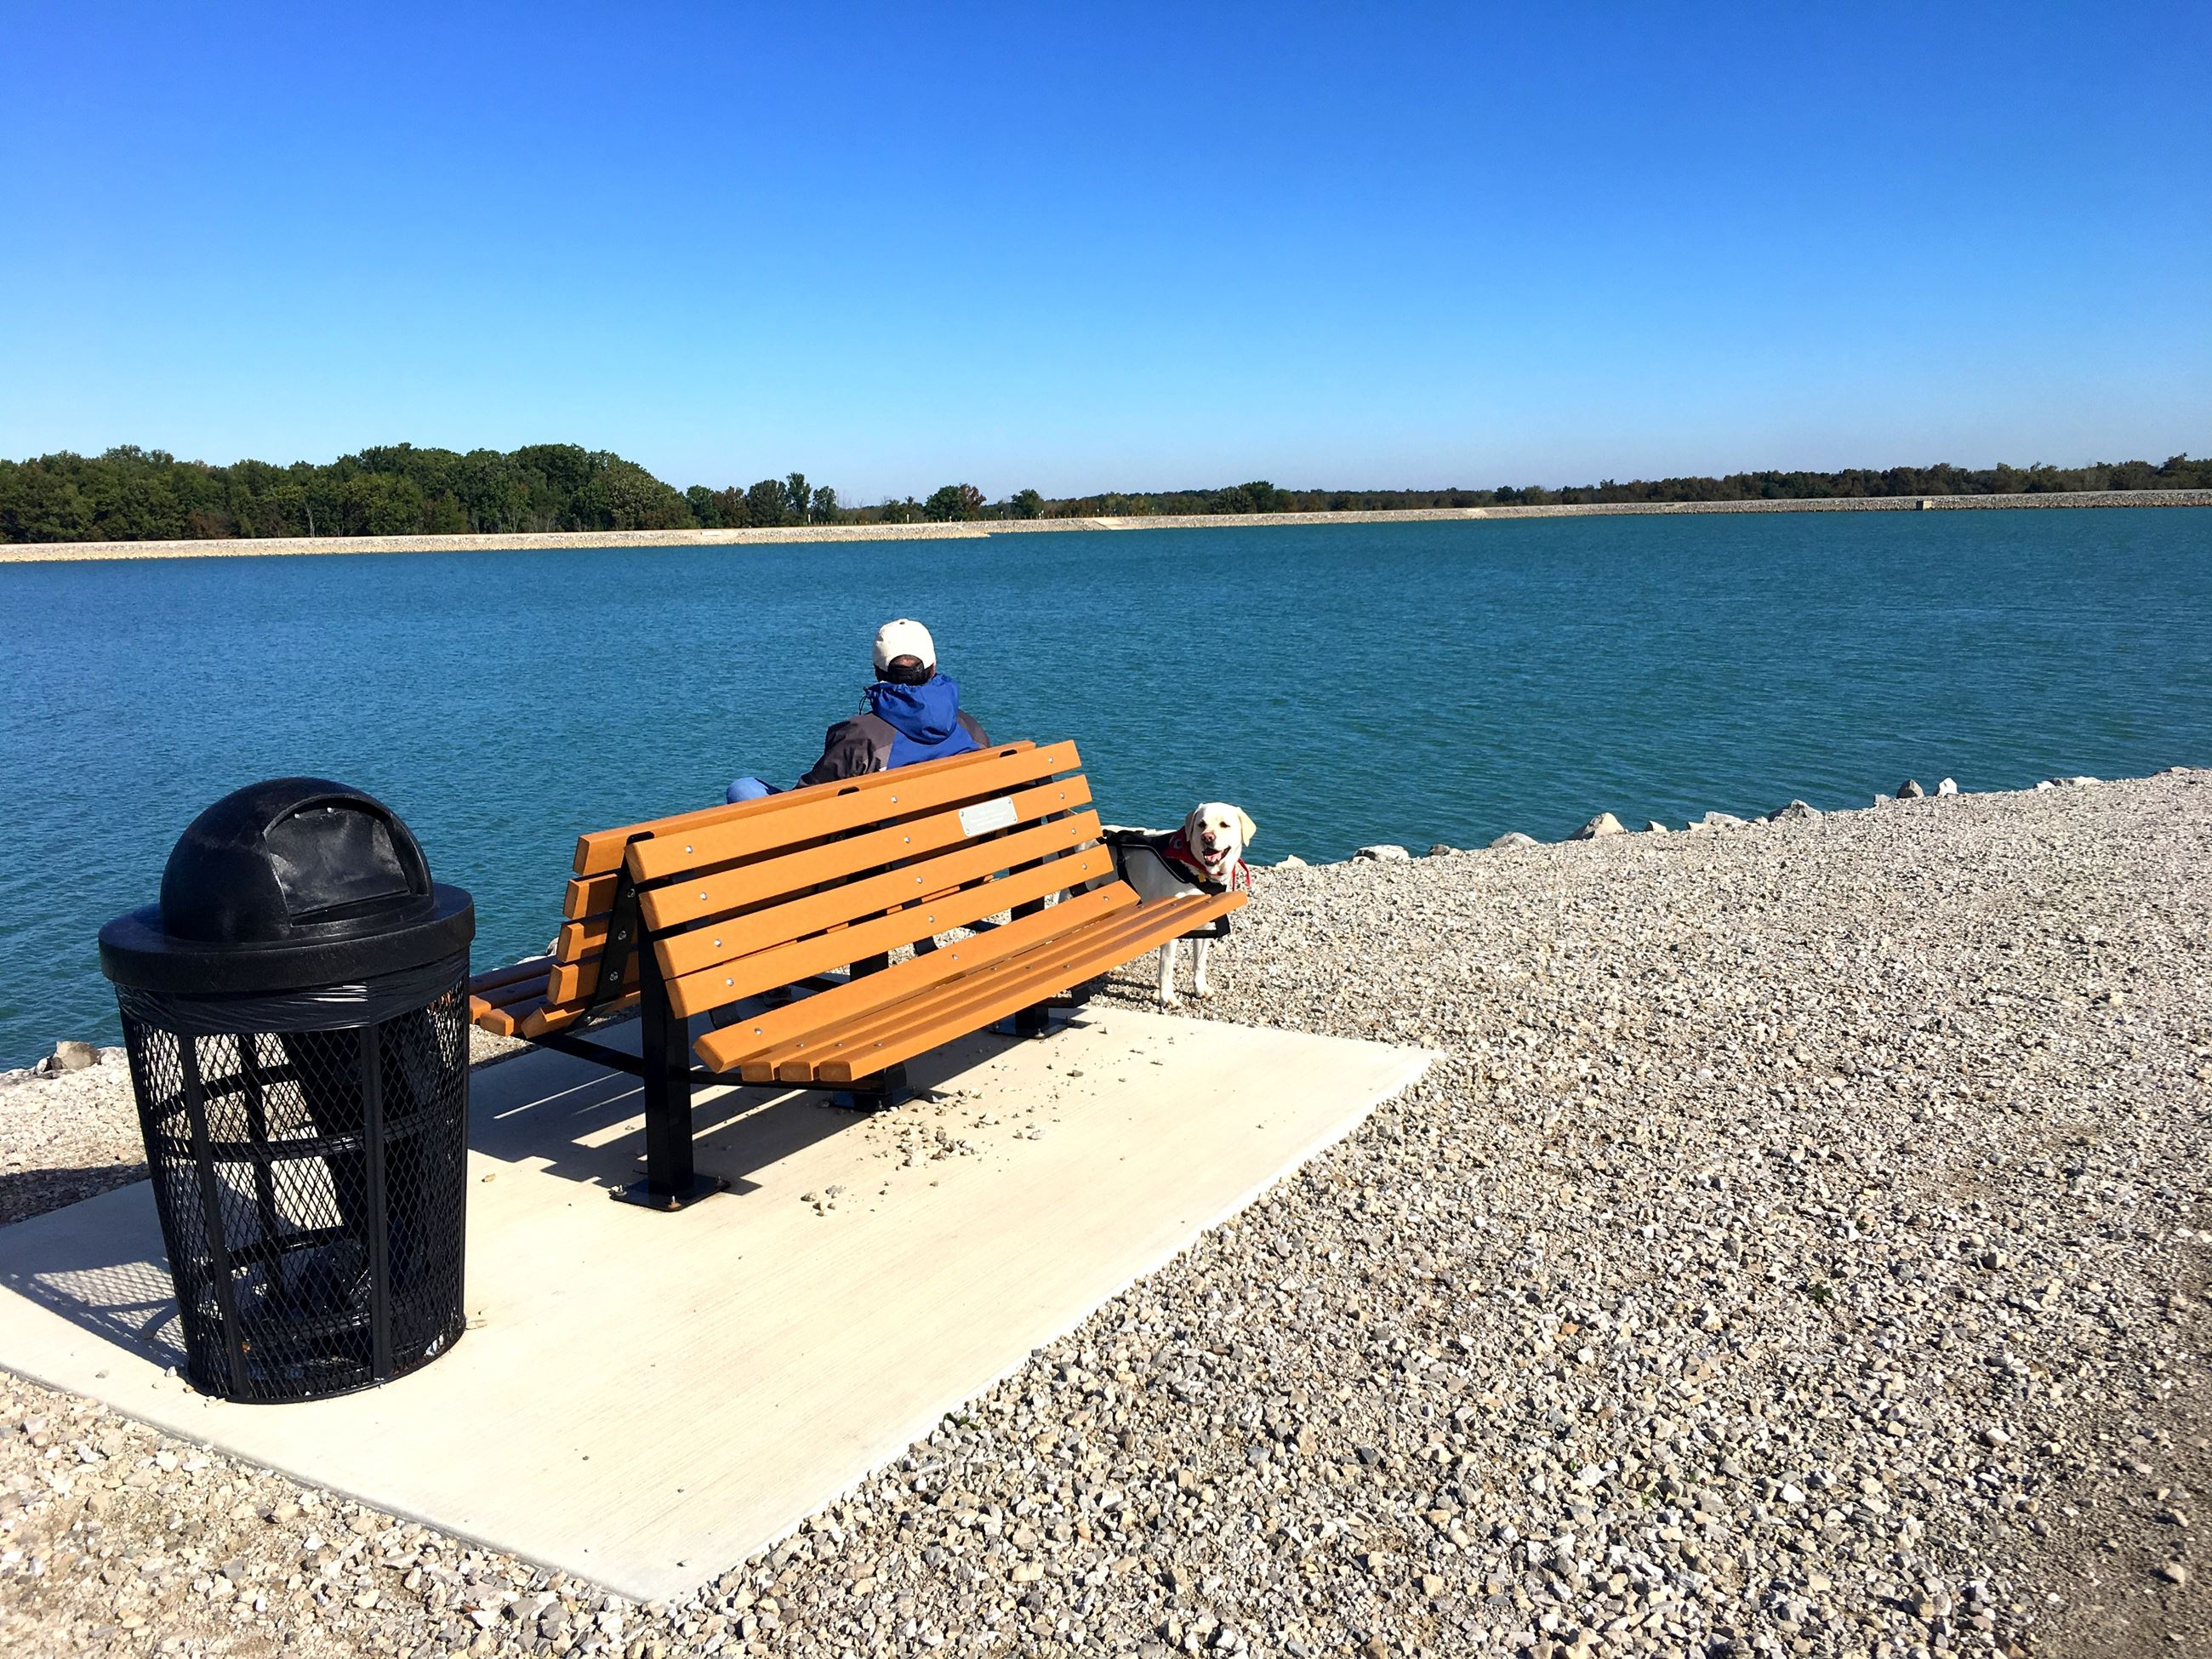 Photo of person sitting on bench at reservoir